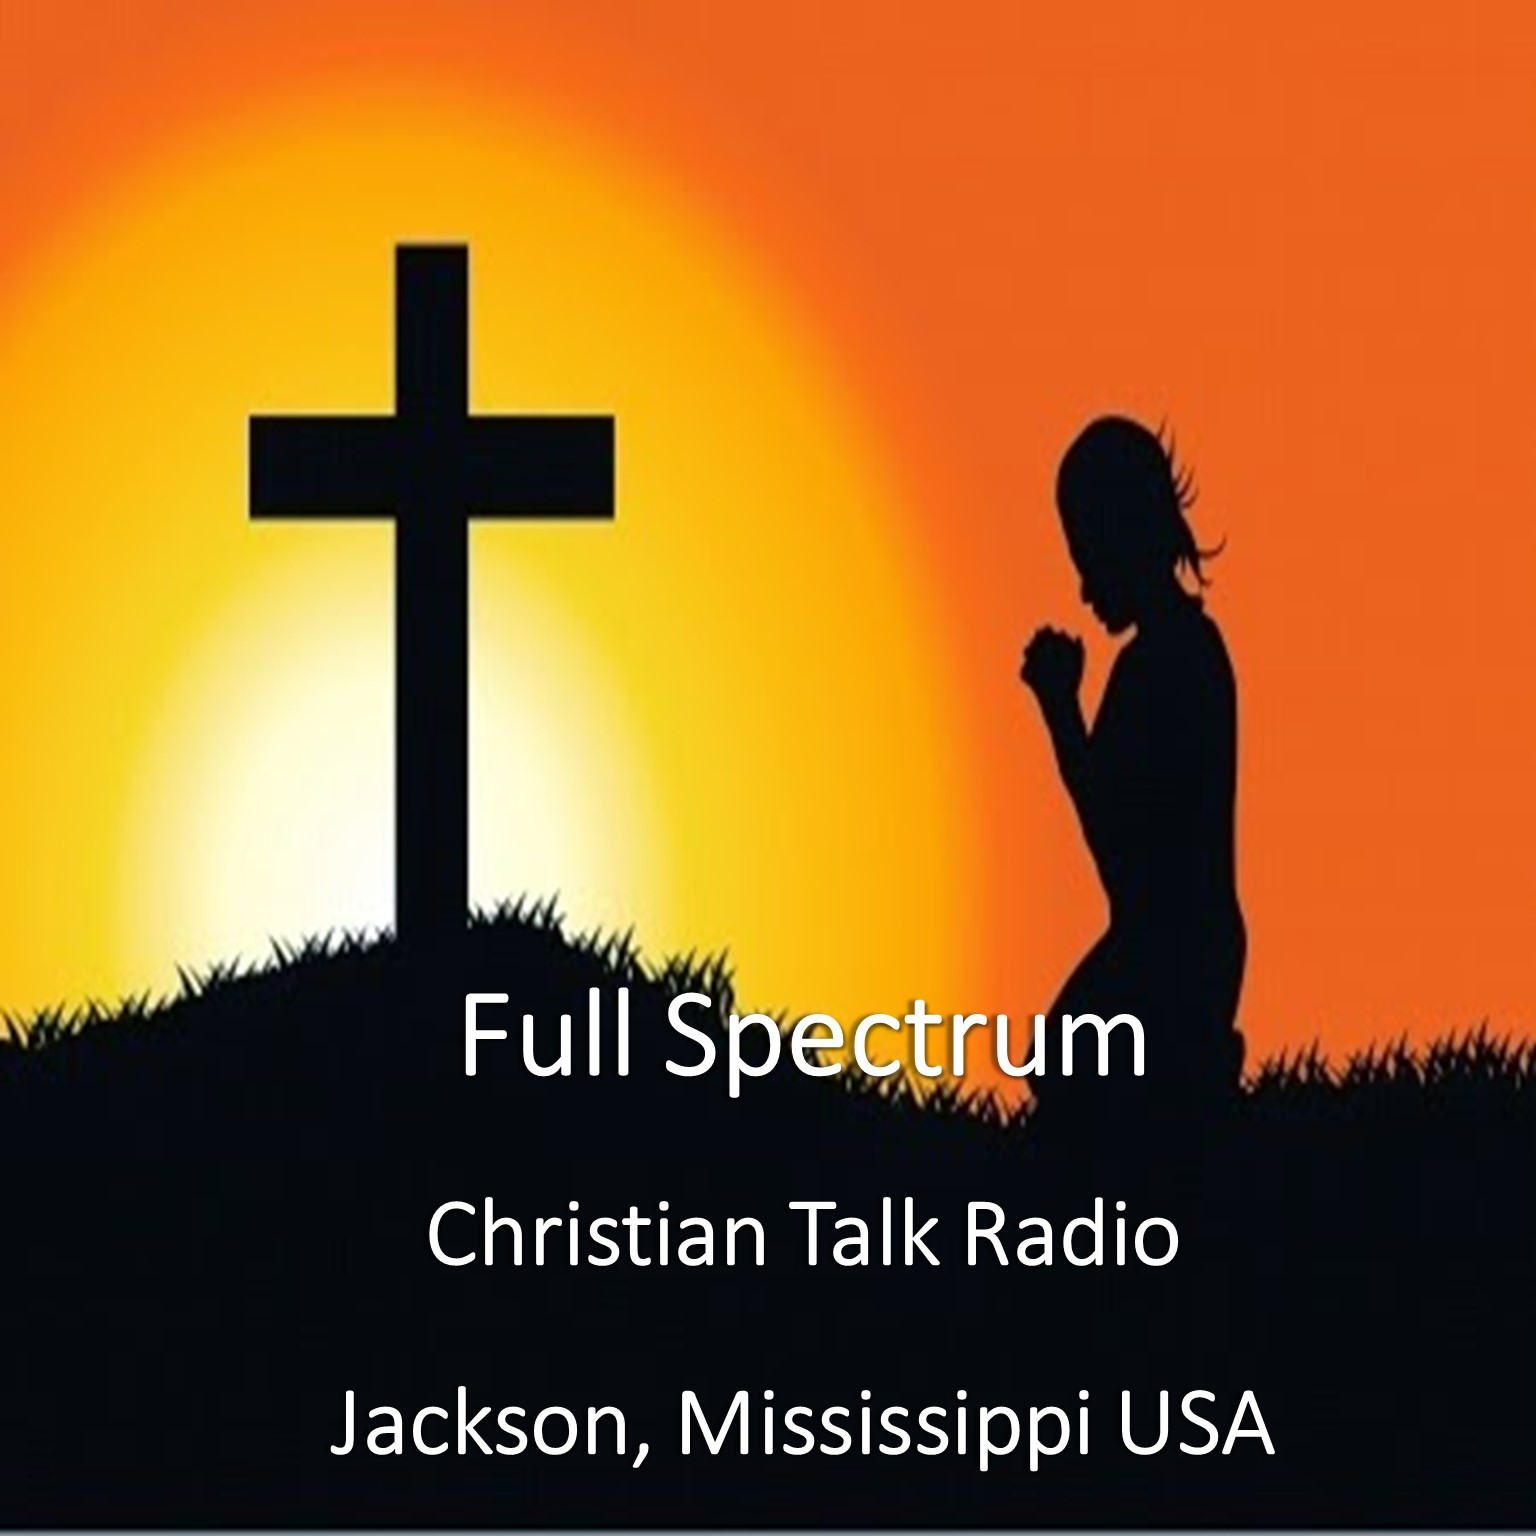 Full Spectrum Christian Talk Radio